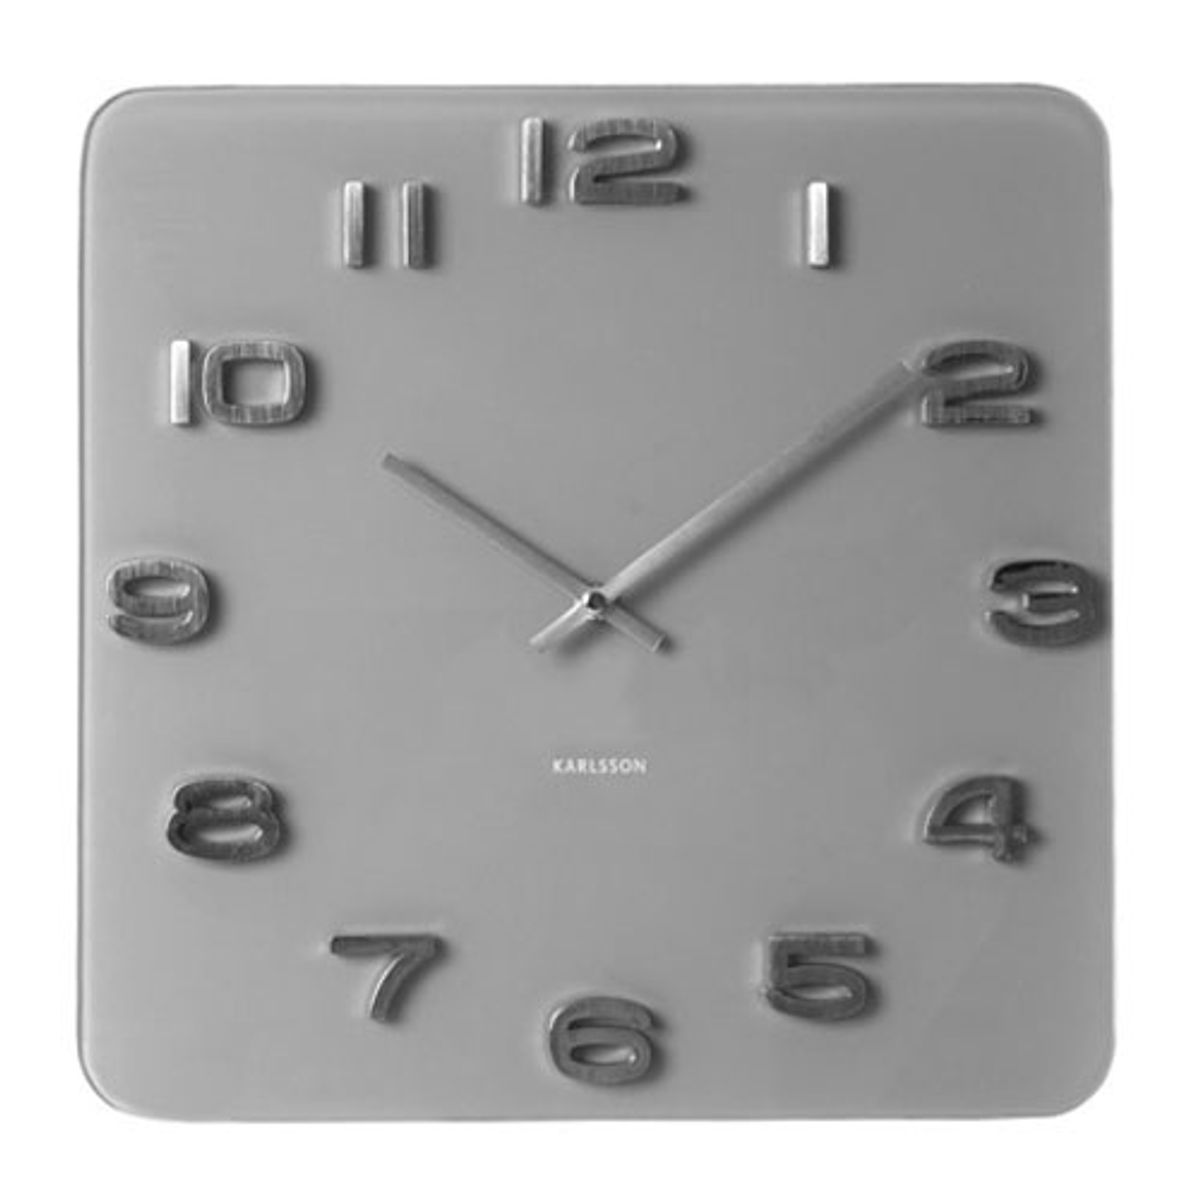 horloge en verre gris carr e vintage karlsson par present time decoclico. Black Bedroom Furniture Sets. Home Design Ideas